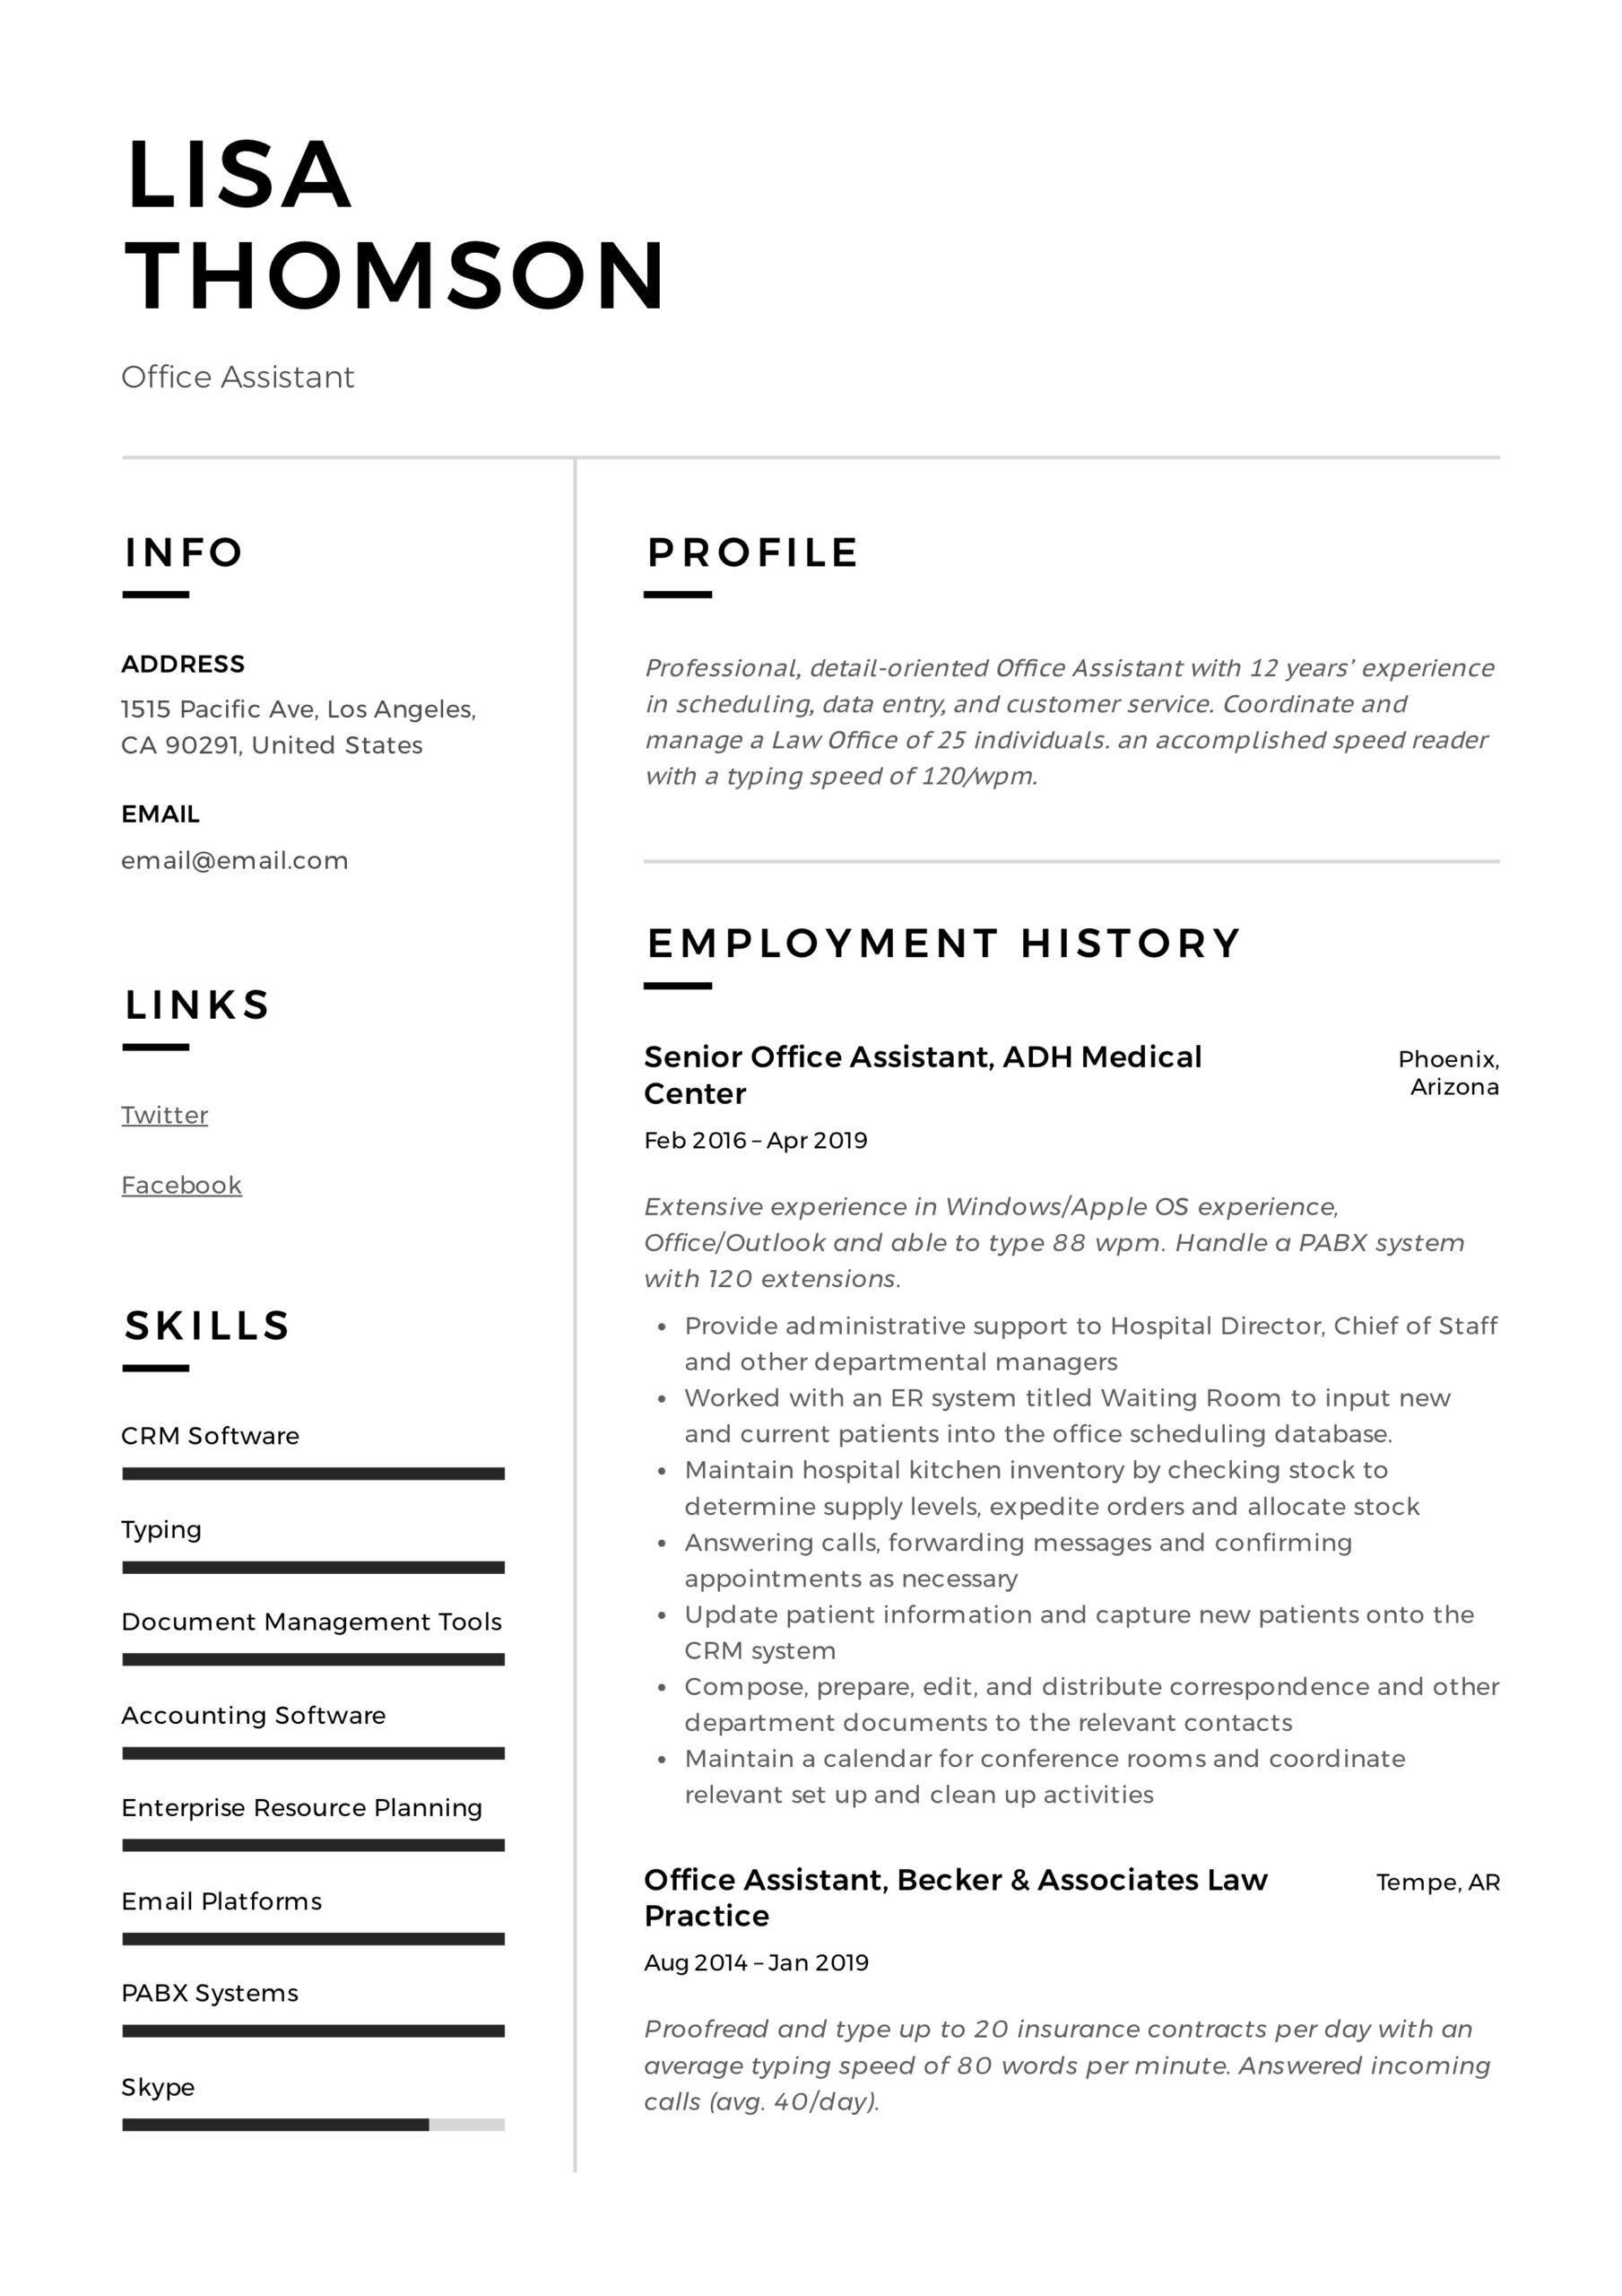 office assistant resume writing guide templates sample for with experience lisa thomson Resume Sample Resume For Office Assistant With Experience